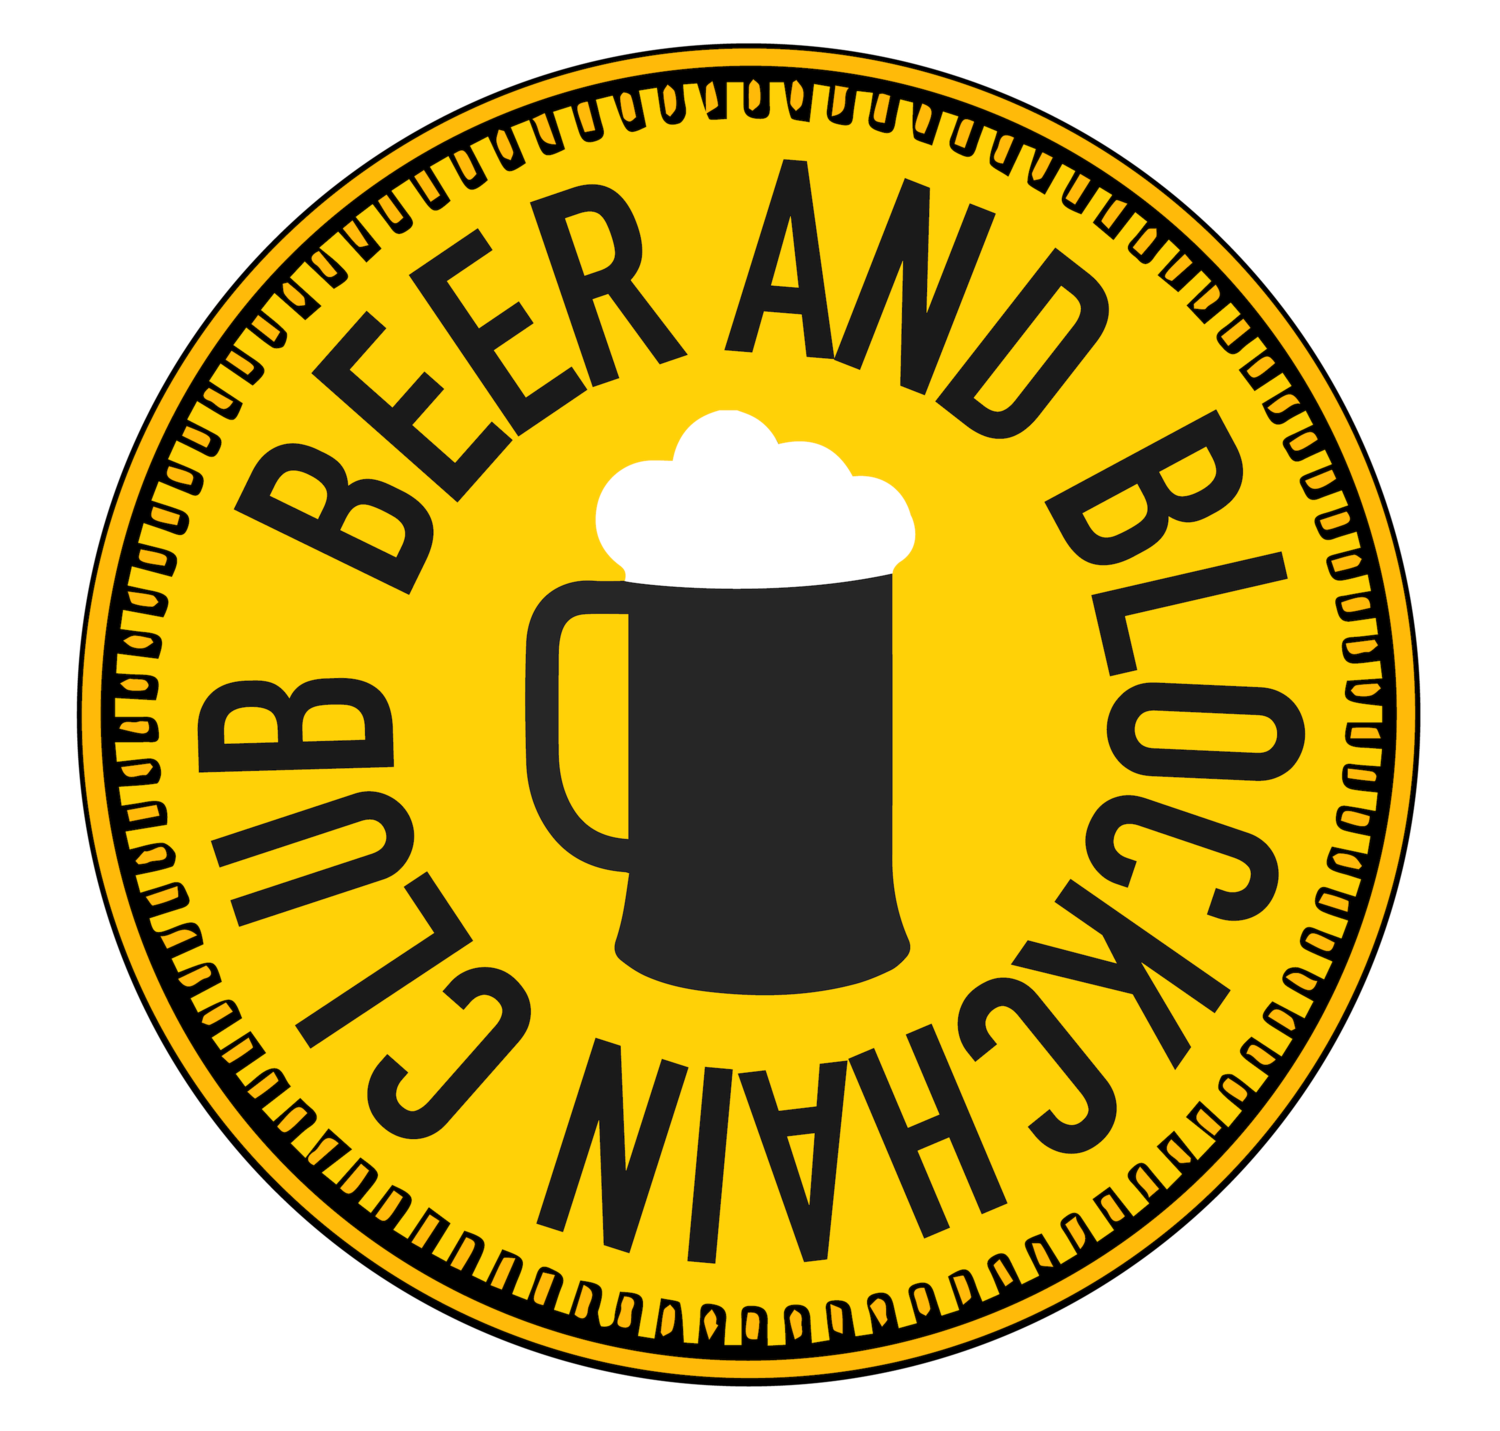 Beer and blockchain club